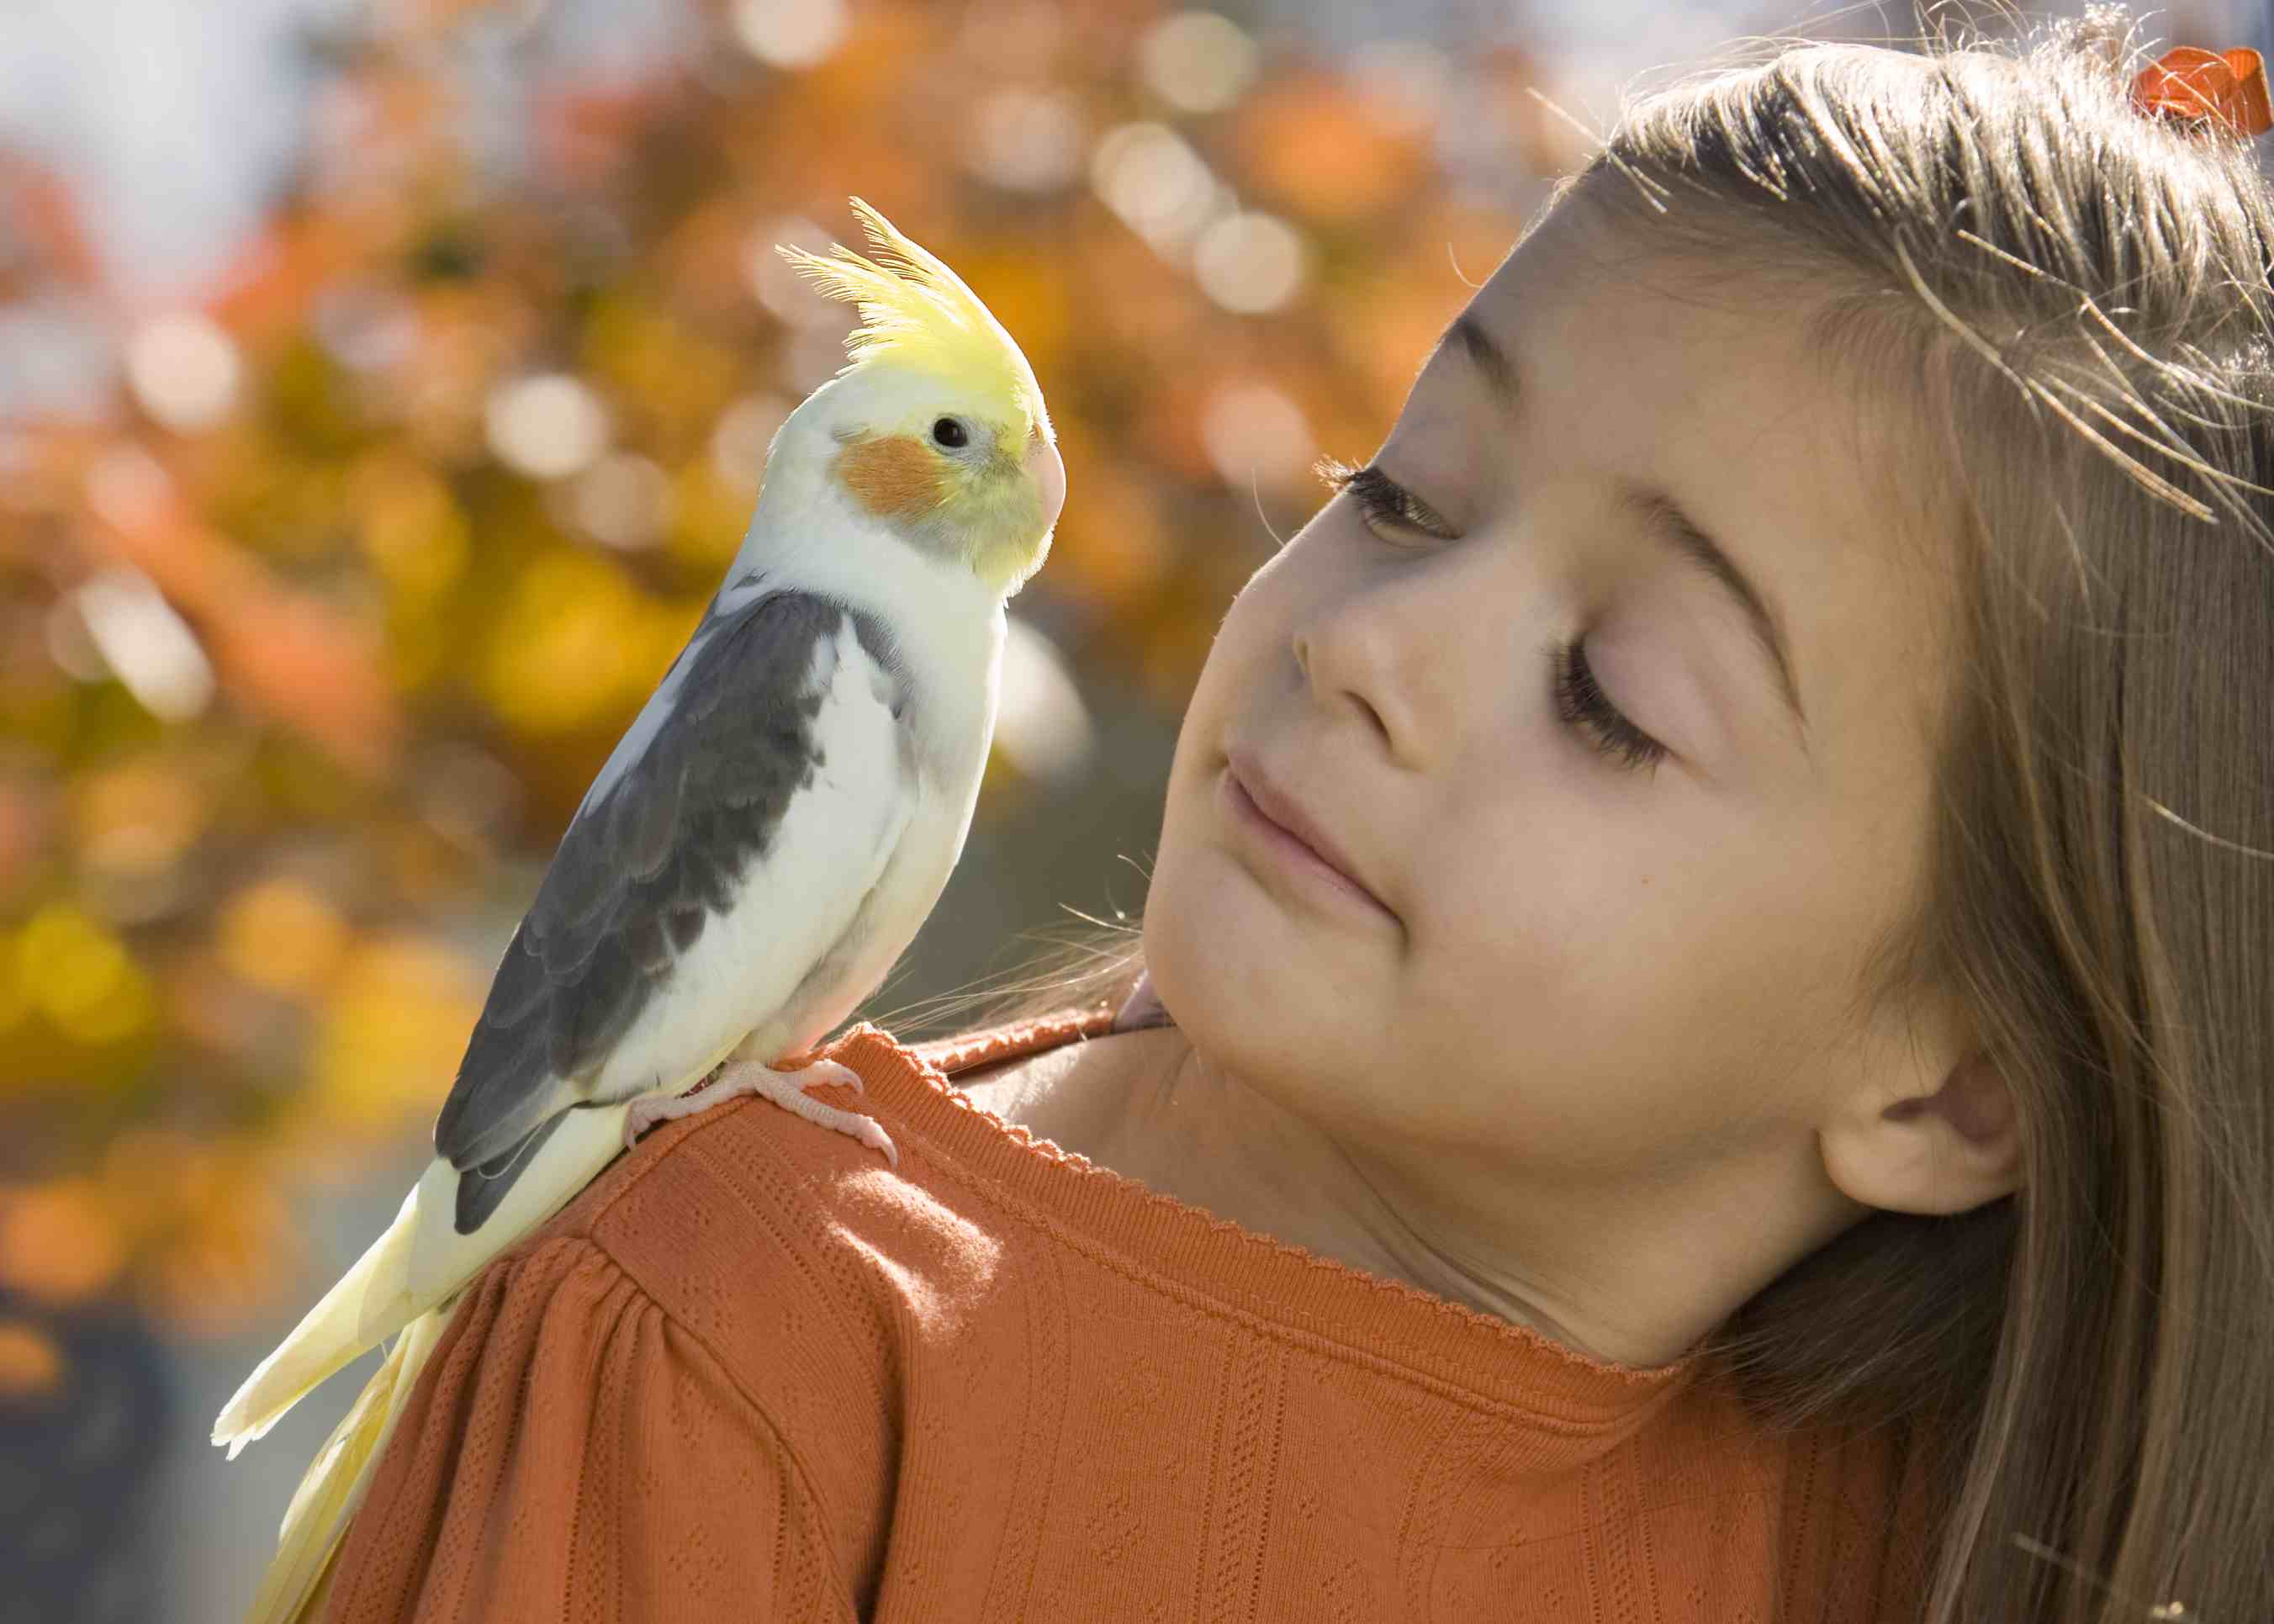 Girl with a cockatiel sitting on her shoulder